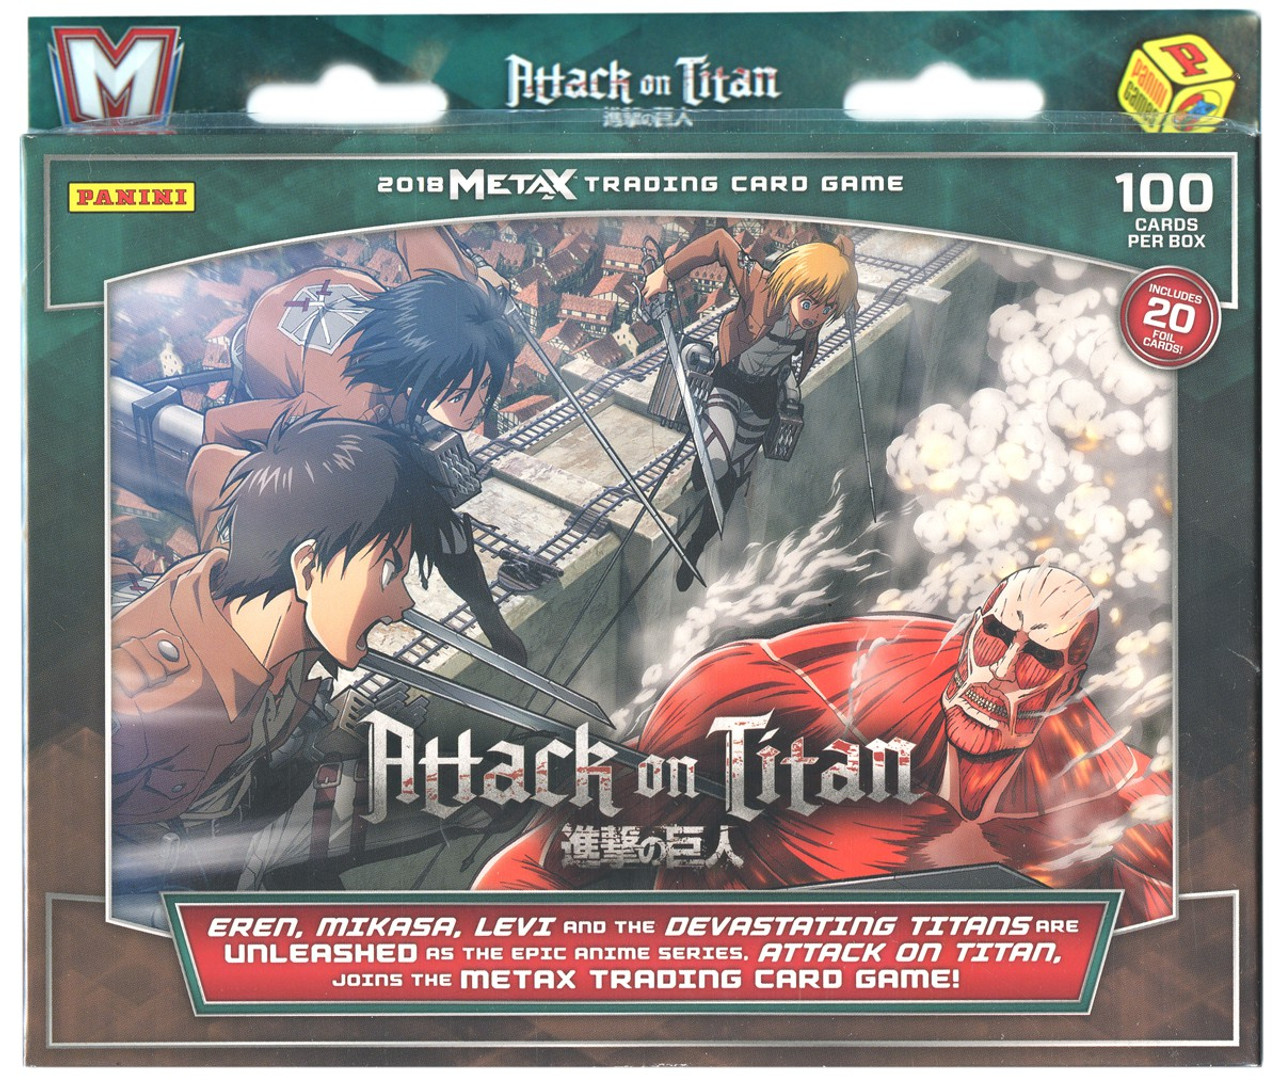 Attack On Titan 2018 Metax Trading Card Game Trading Card Game Panini Toywiz